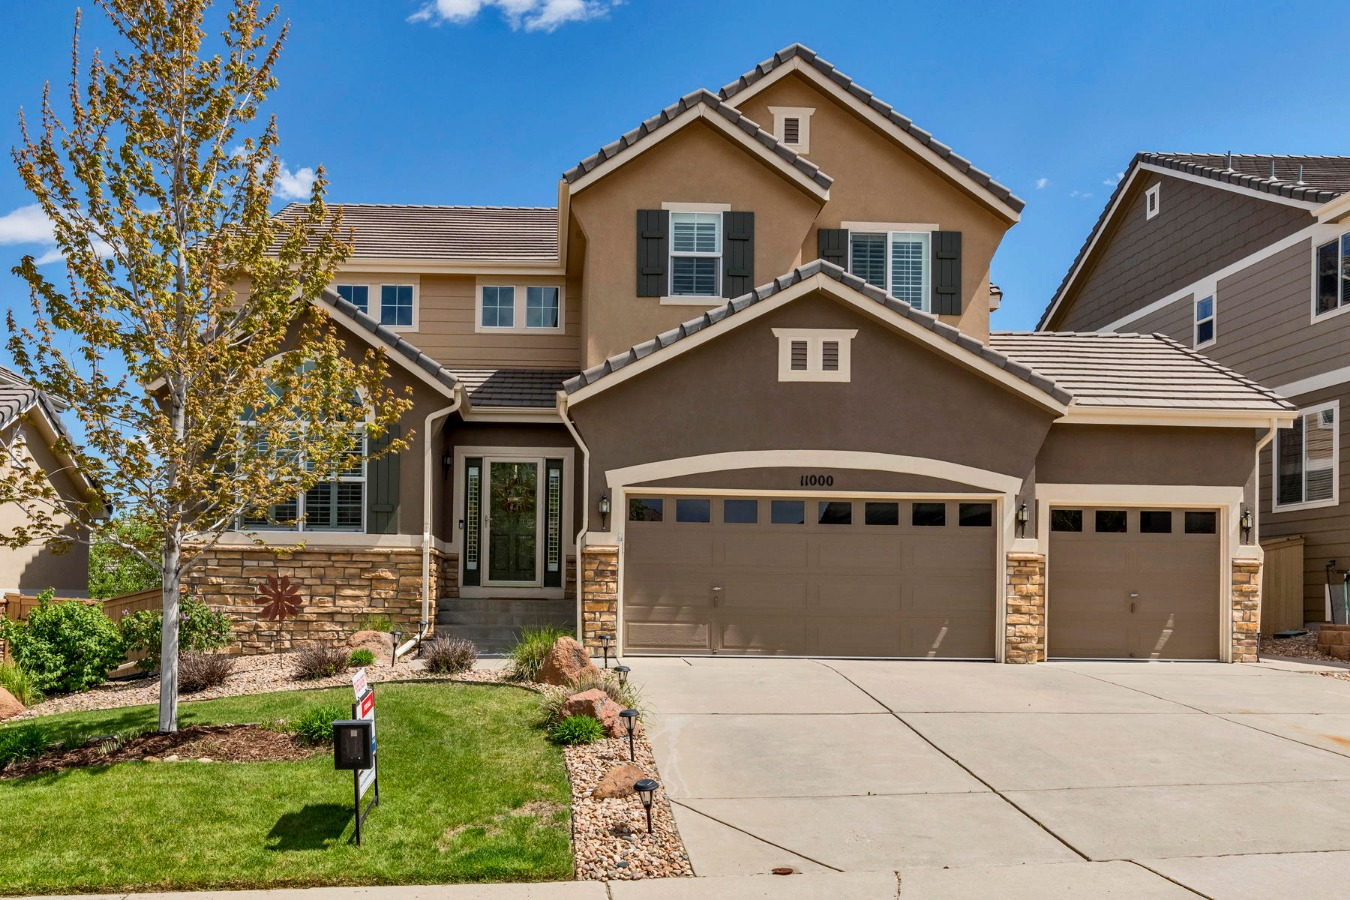 Incredibly Beautiful Home Loaded with Updates!